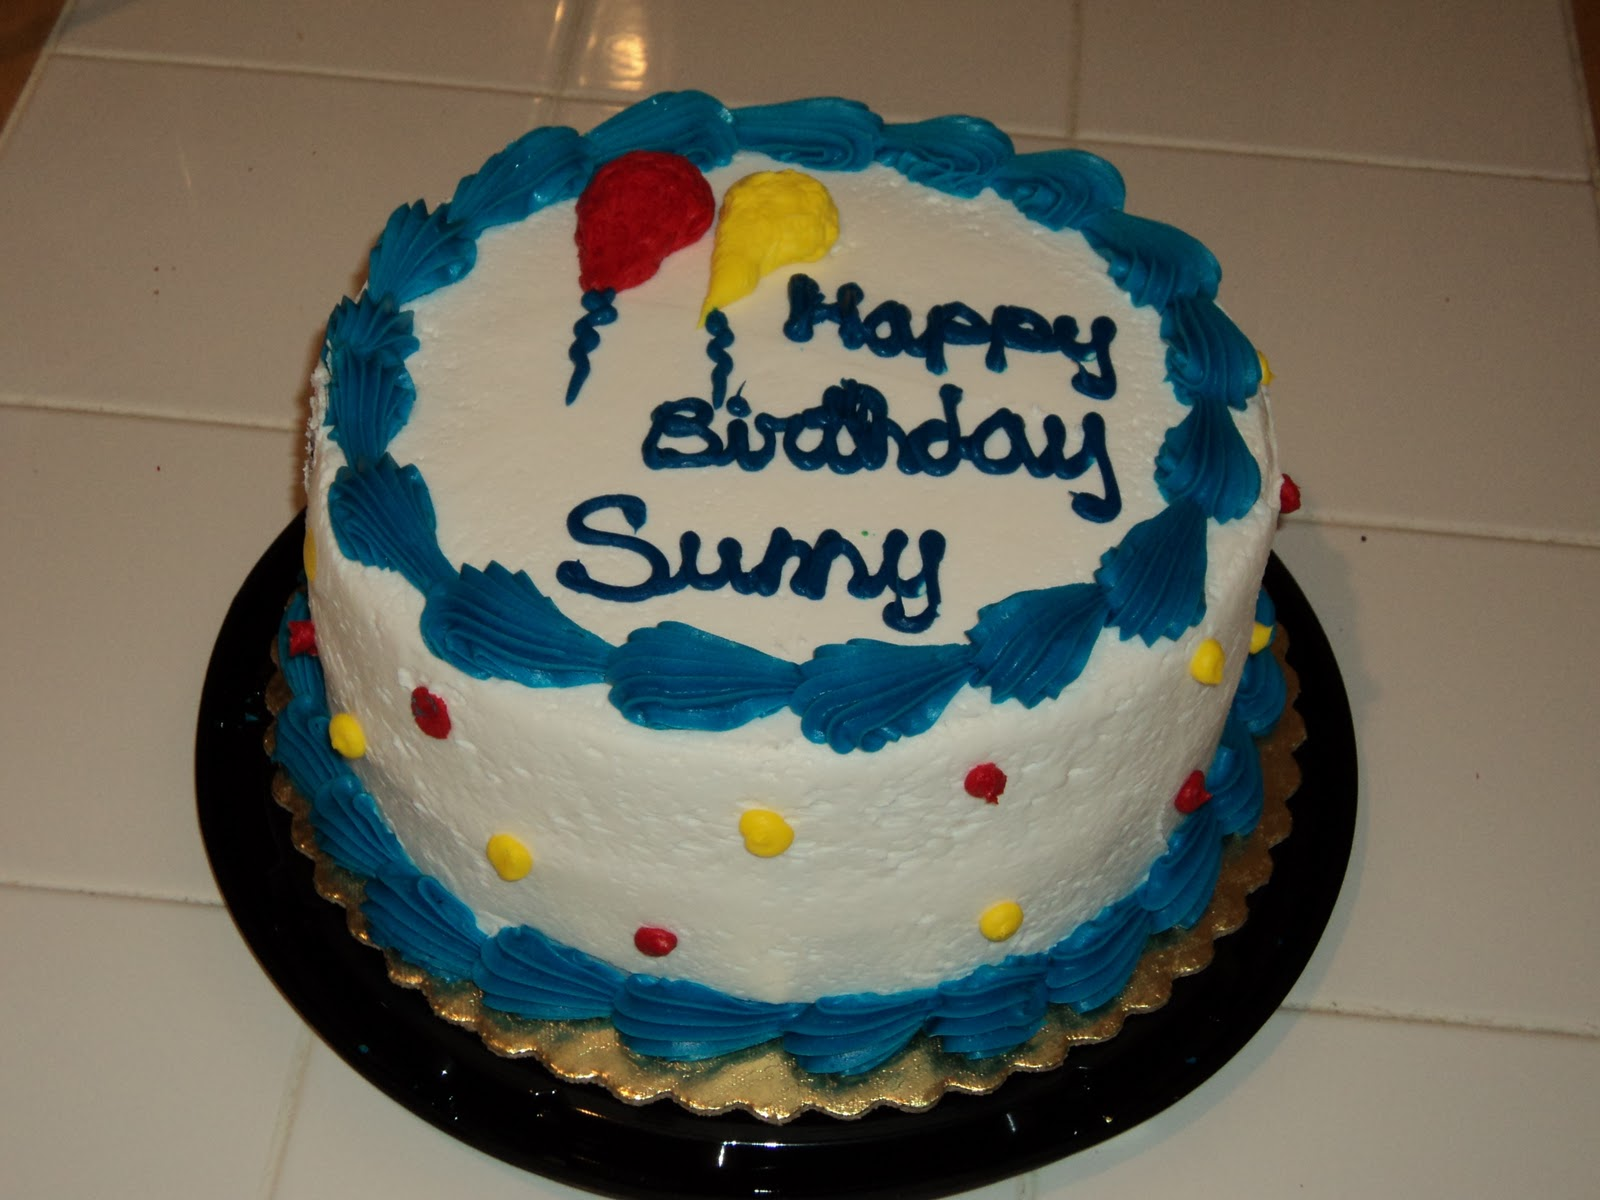 Birthday Cake Images With Name Sunny : SurfWriter Girls: Sunny s Big B-Day